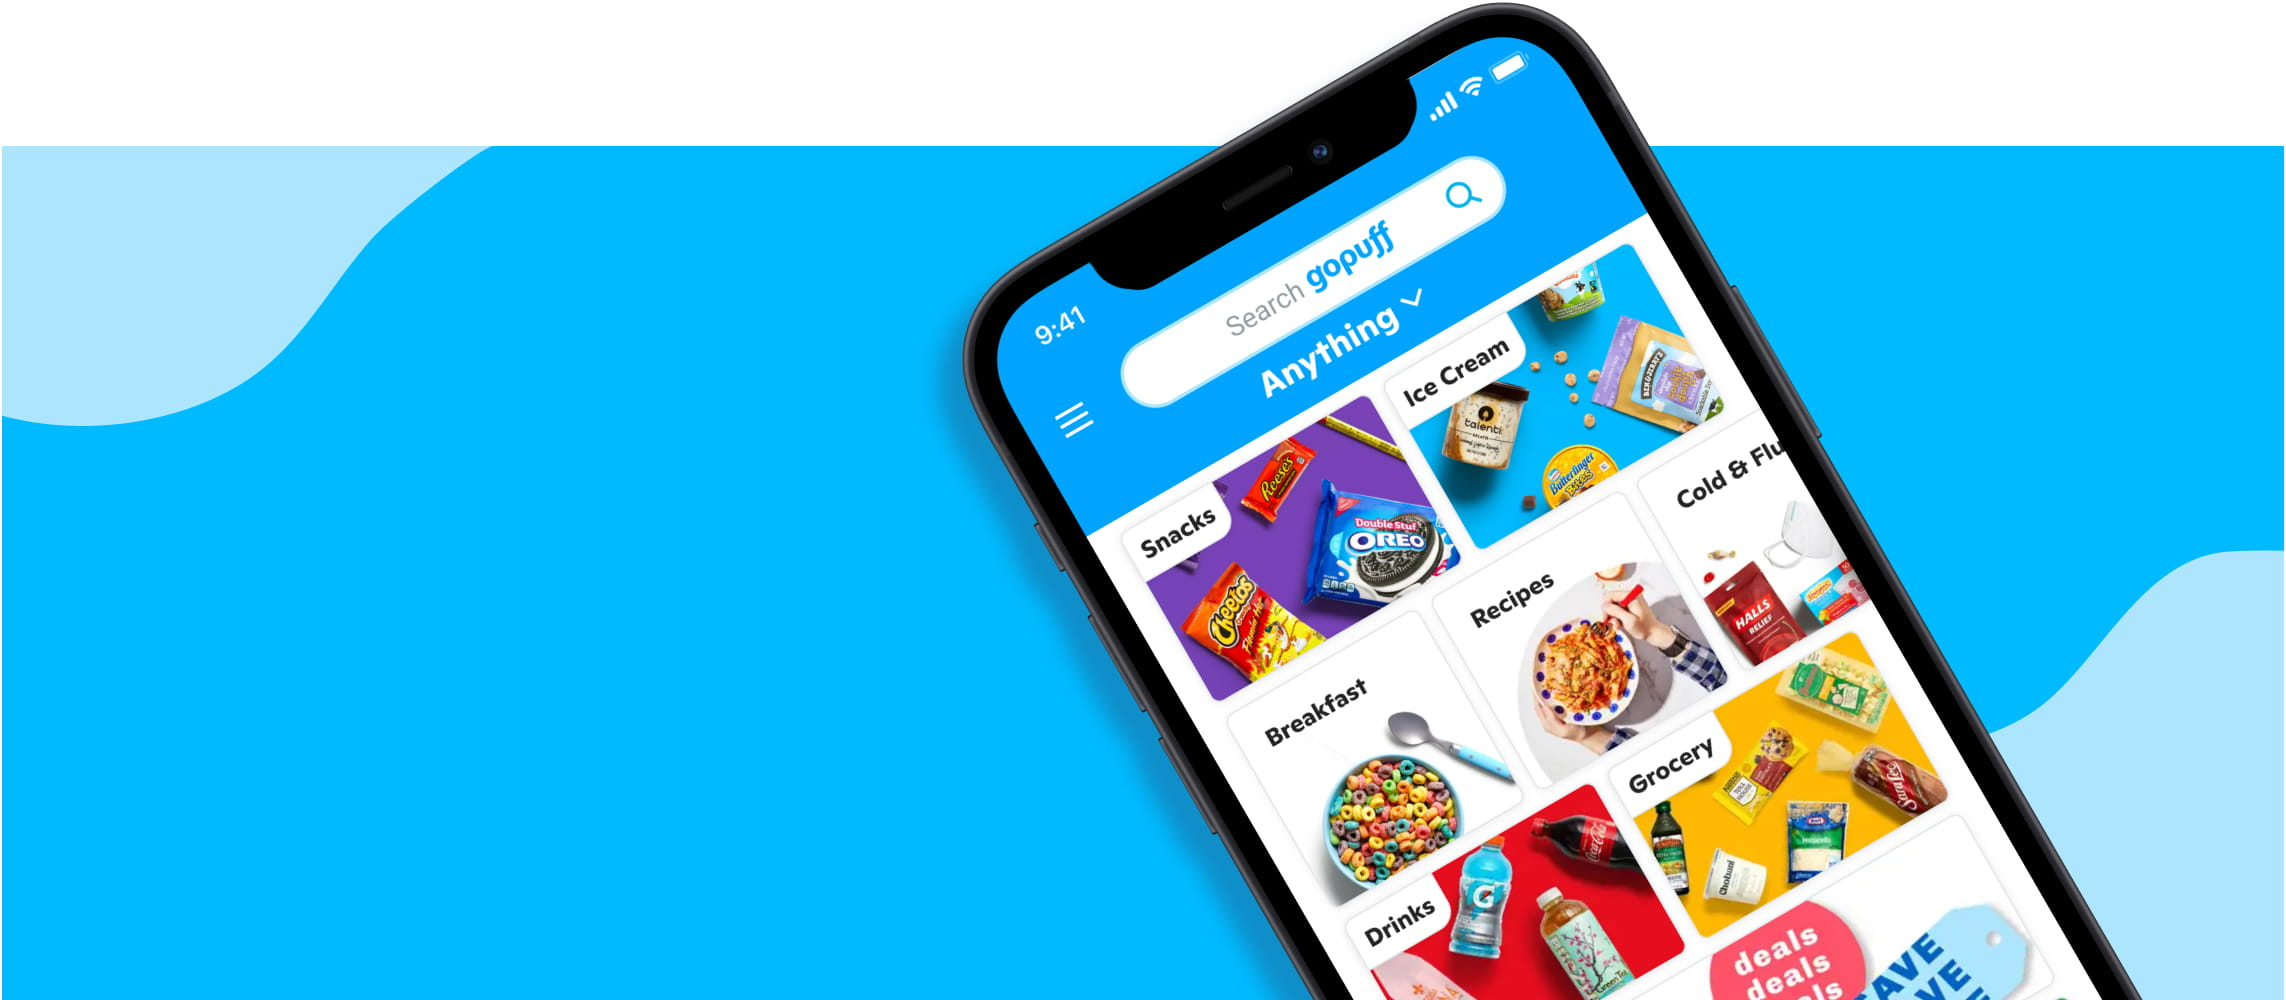 GoPuff is an odd job app that pays you to deliver snacks